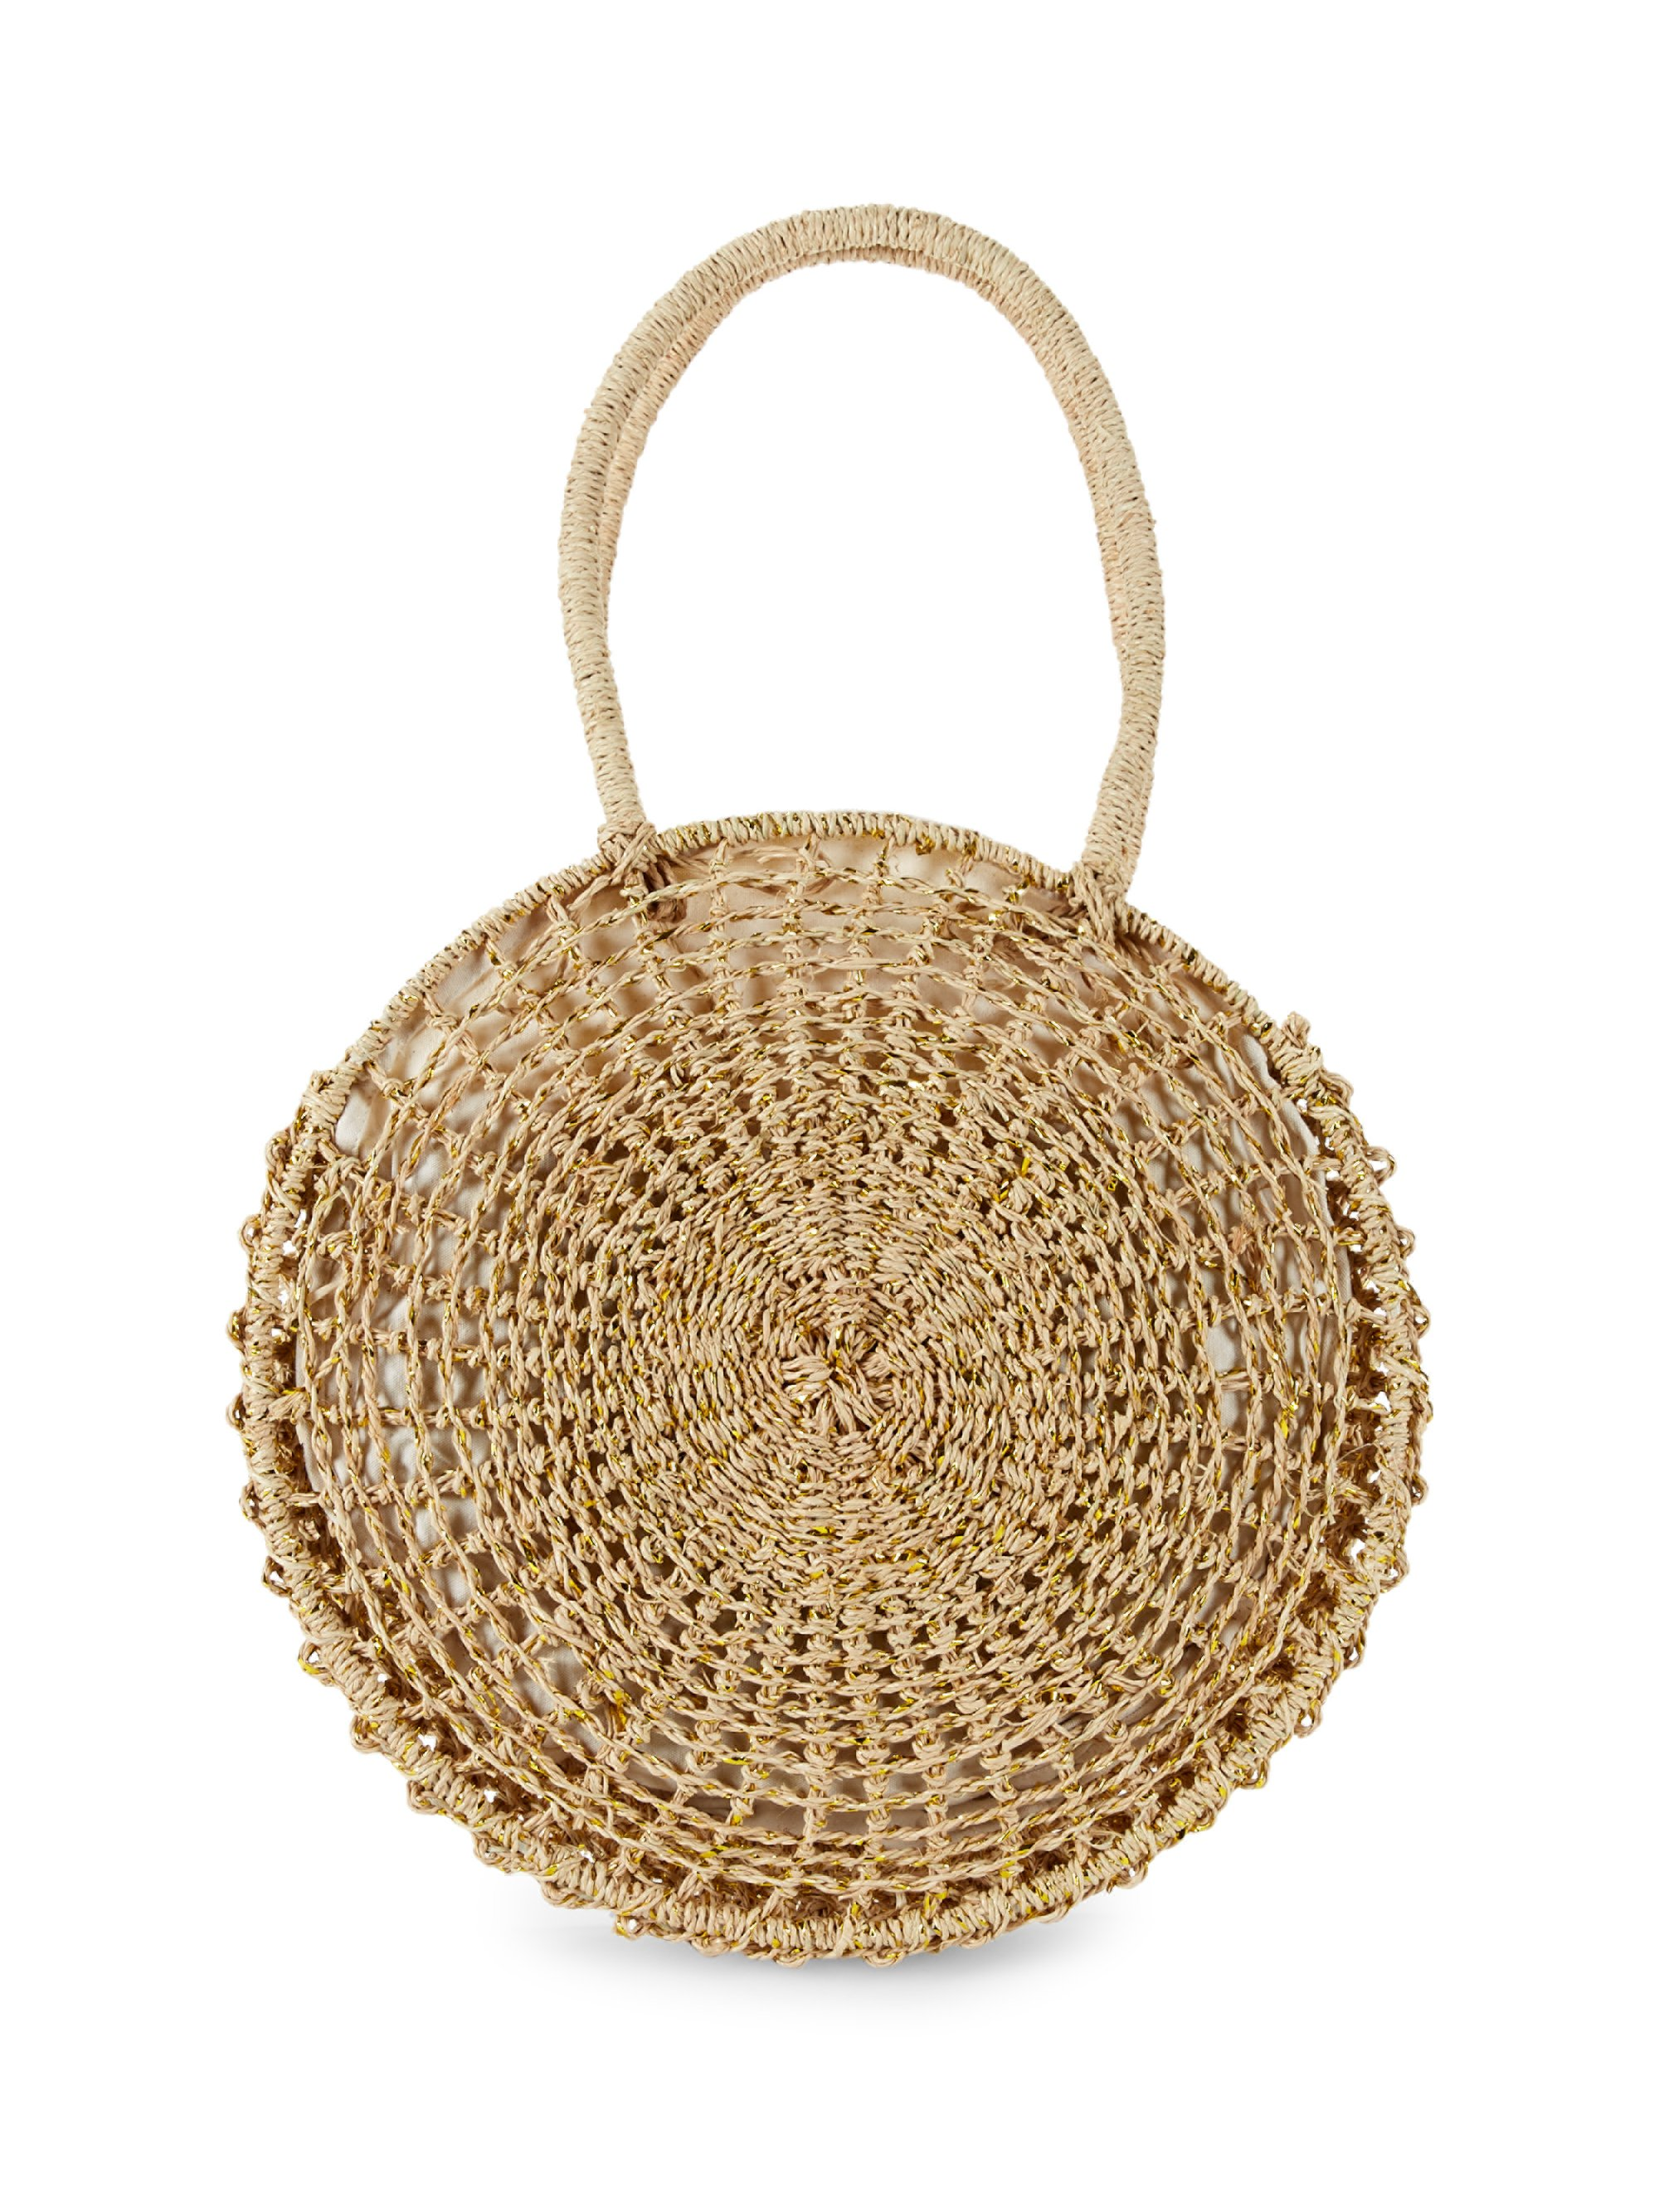 I love this beachy straw tote that works with nearly every summer look, both day and night.